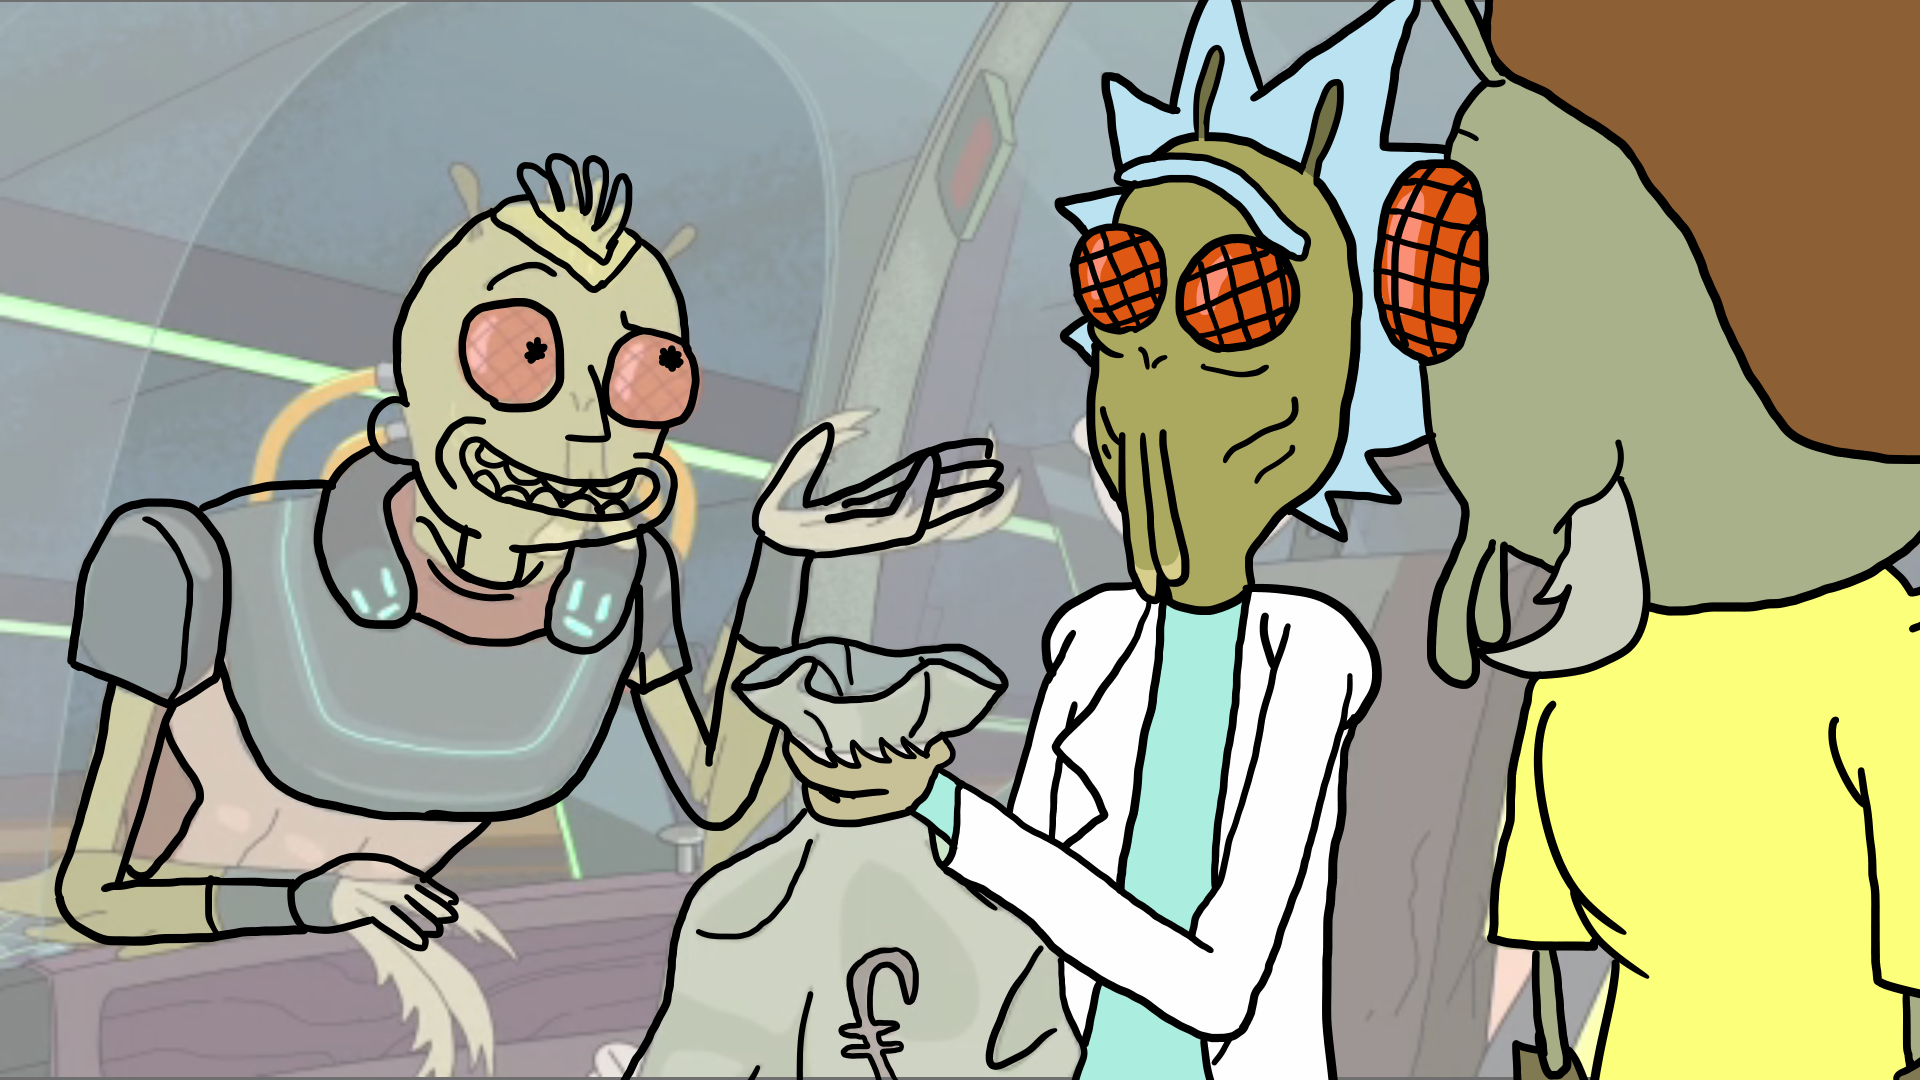 Rick and morty wallpaper png. An unfinished edit of